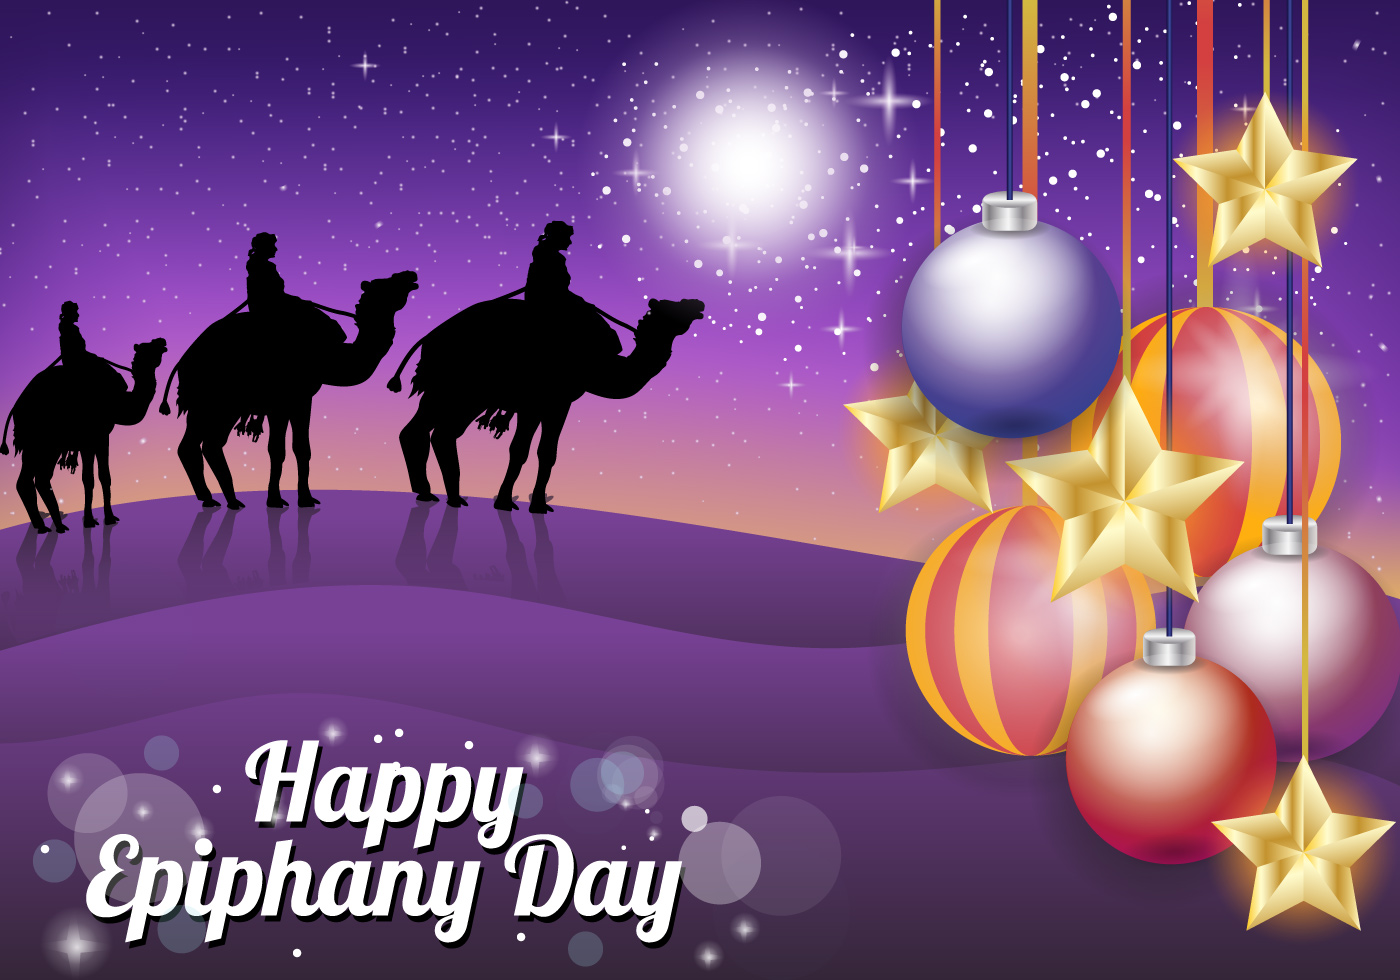 Epiphany Day With Three Kings In The Dessert  Download Free Vector Art, Stock Graphics u0026 Images